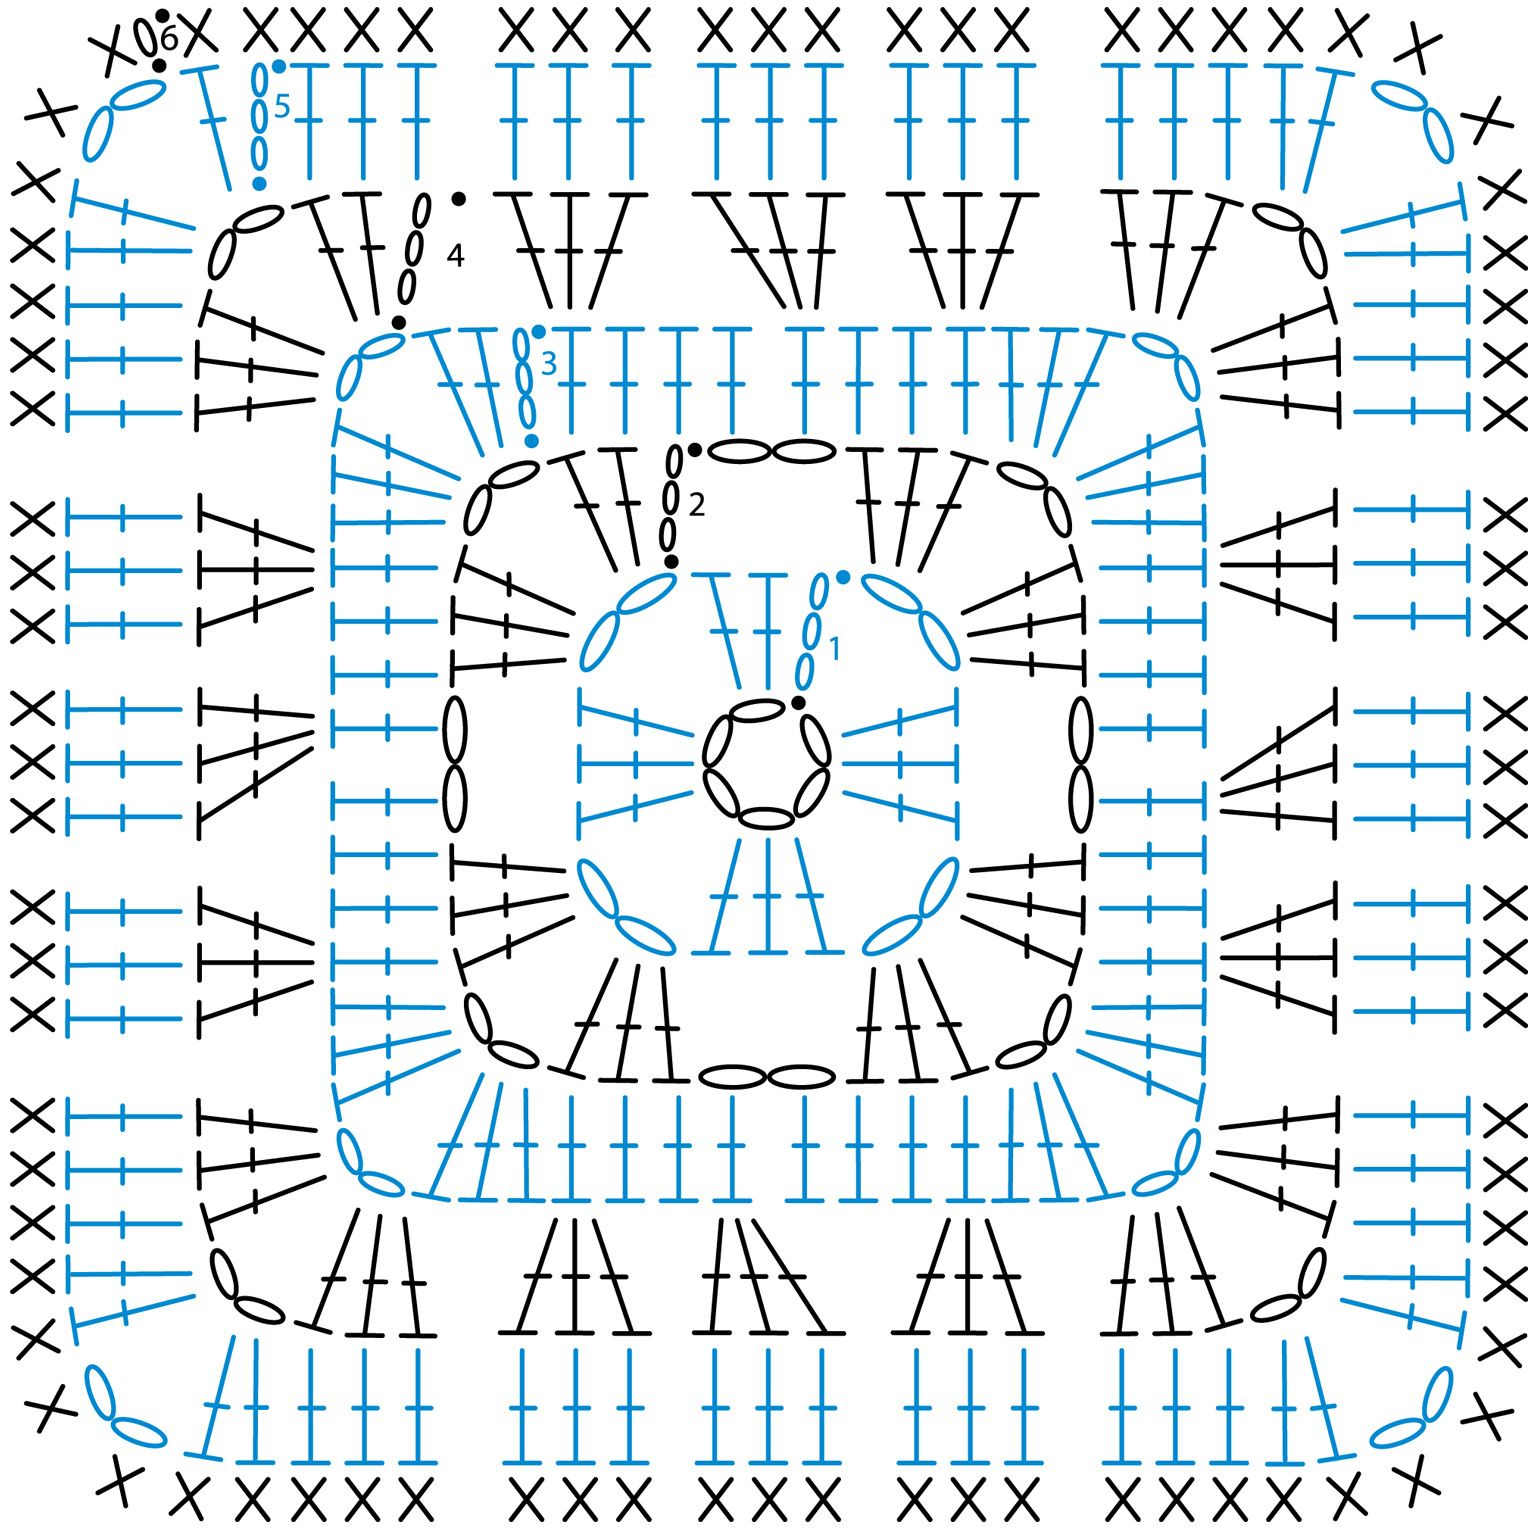 crochet granny square diagram cat 3 wiring rj45 pin by radiant hope on collection pinterest blocks patterns motifs squares